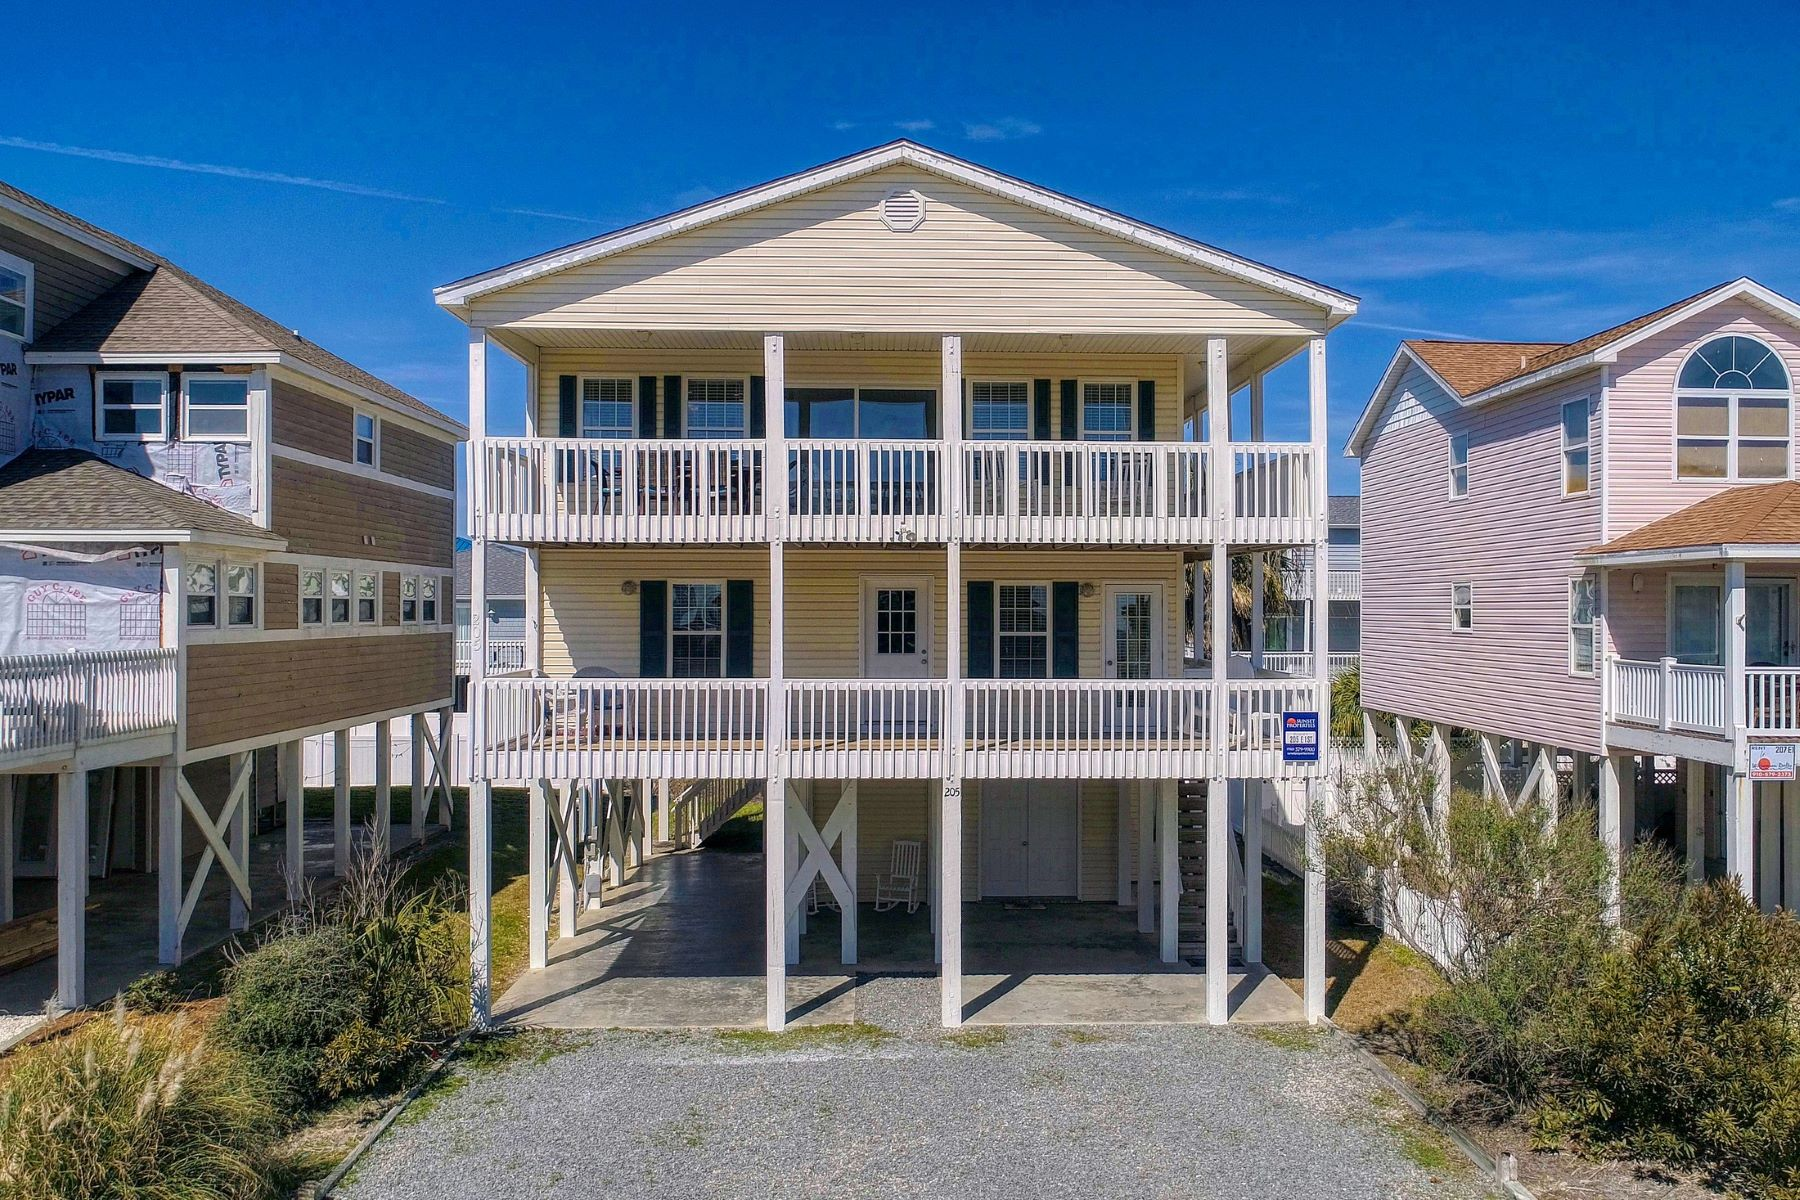 Single Family Homes for Sale at Second Row Beach House with Ocean View 205 E First Street Ocean Isle Beach, North Carolina 28469 United States